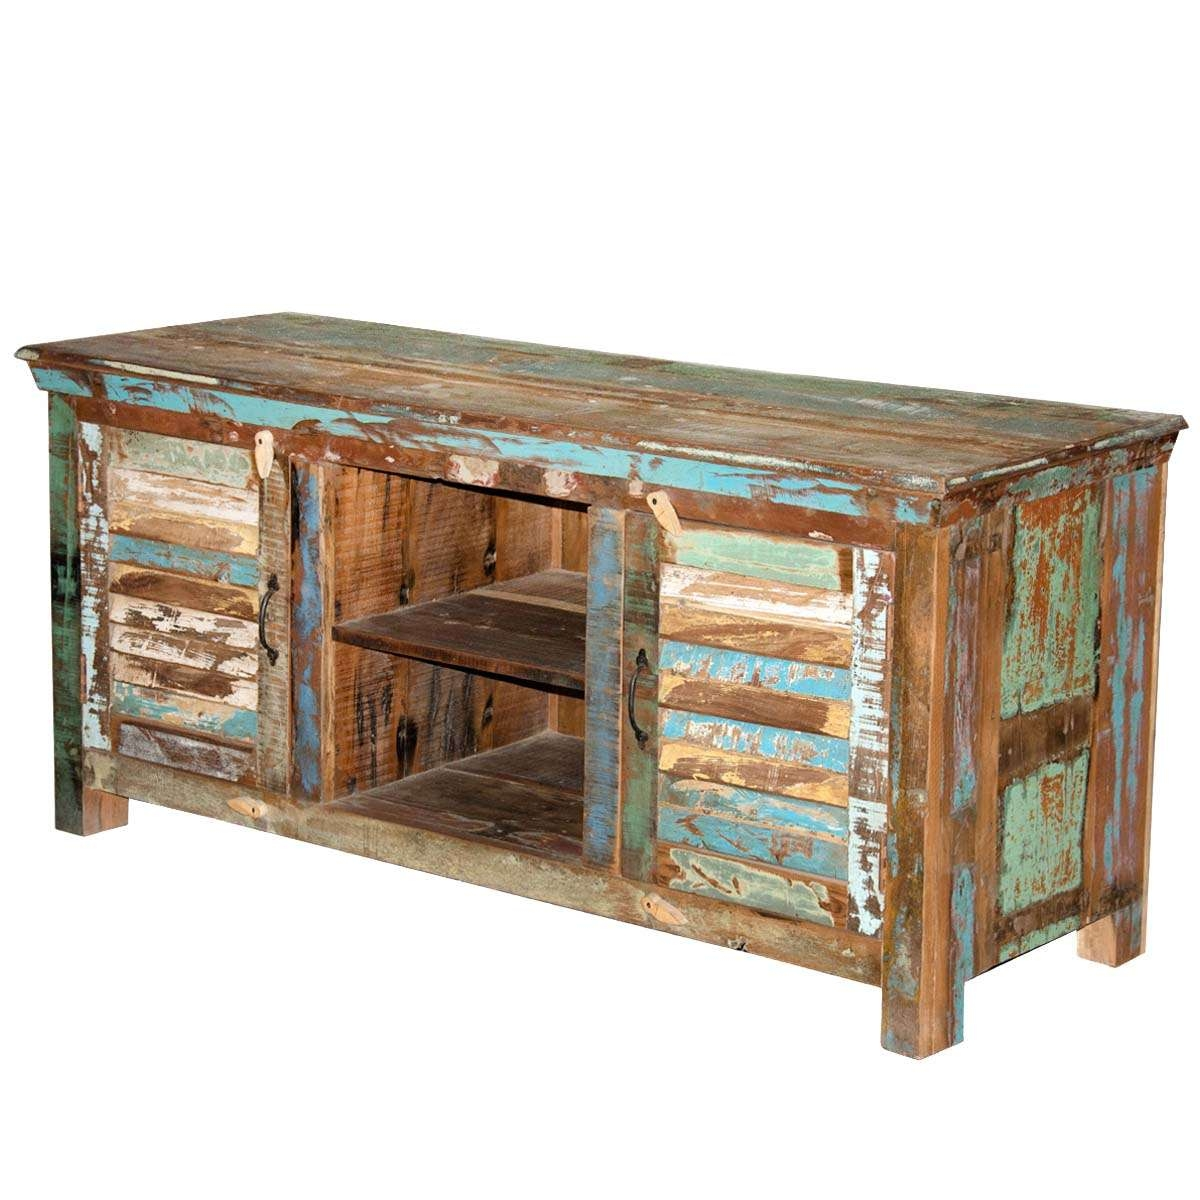 Rustic Shutter Doors Reclaimed Wood Tv Stand Media Console Pertaining To Wooden Tv Stands (View 4 of 15)